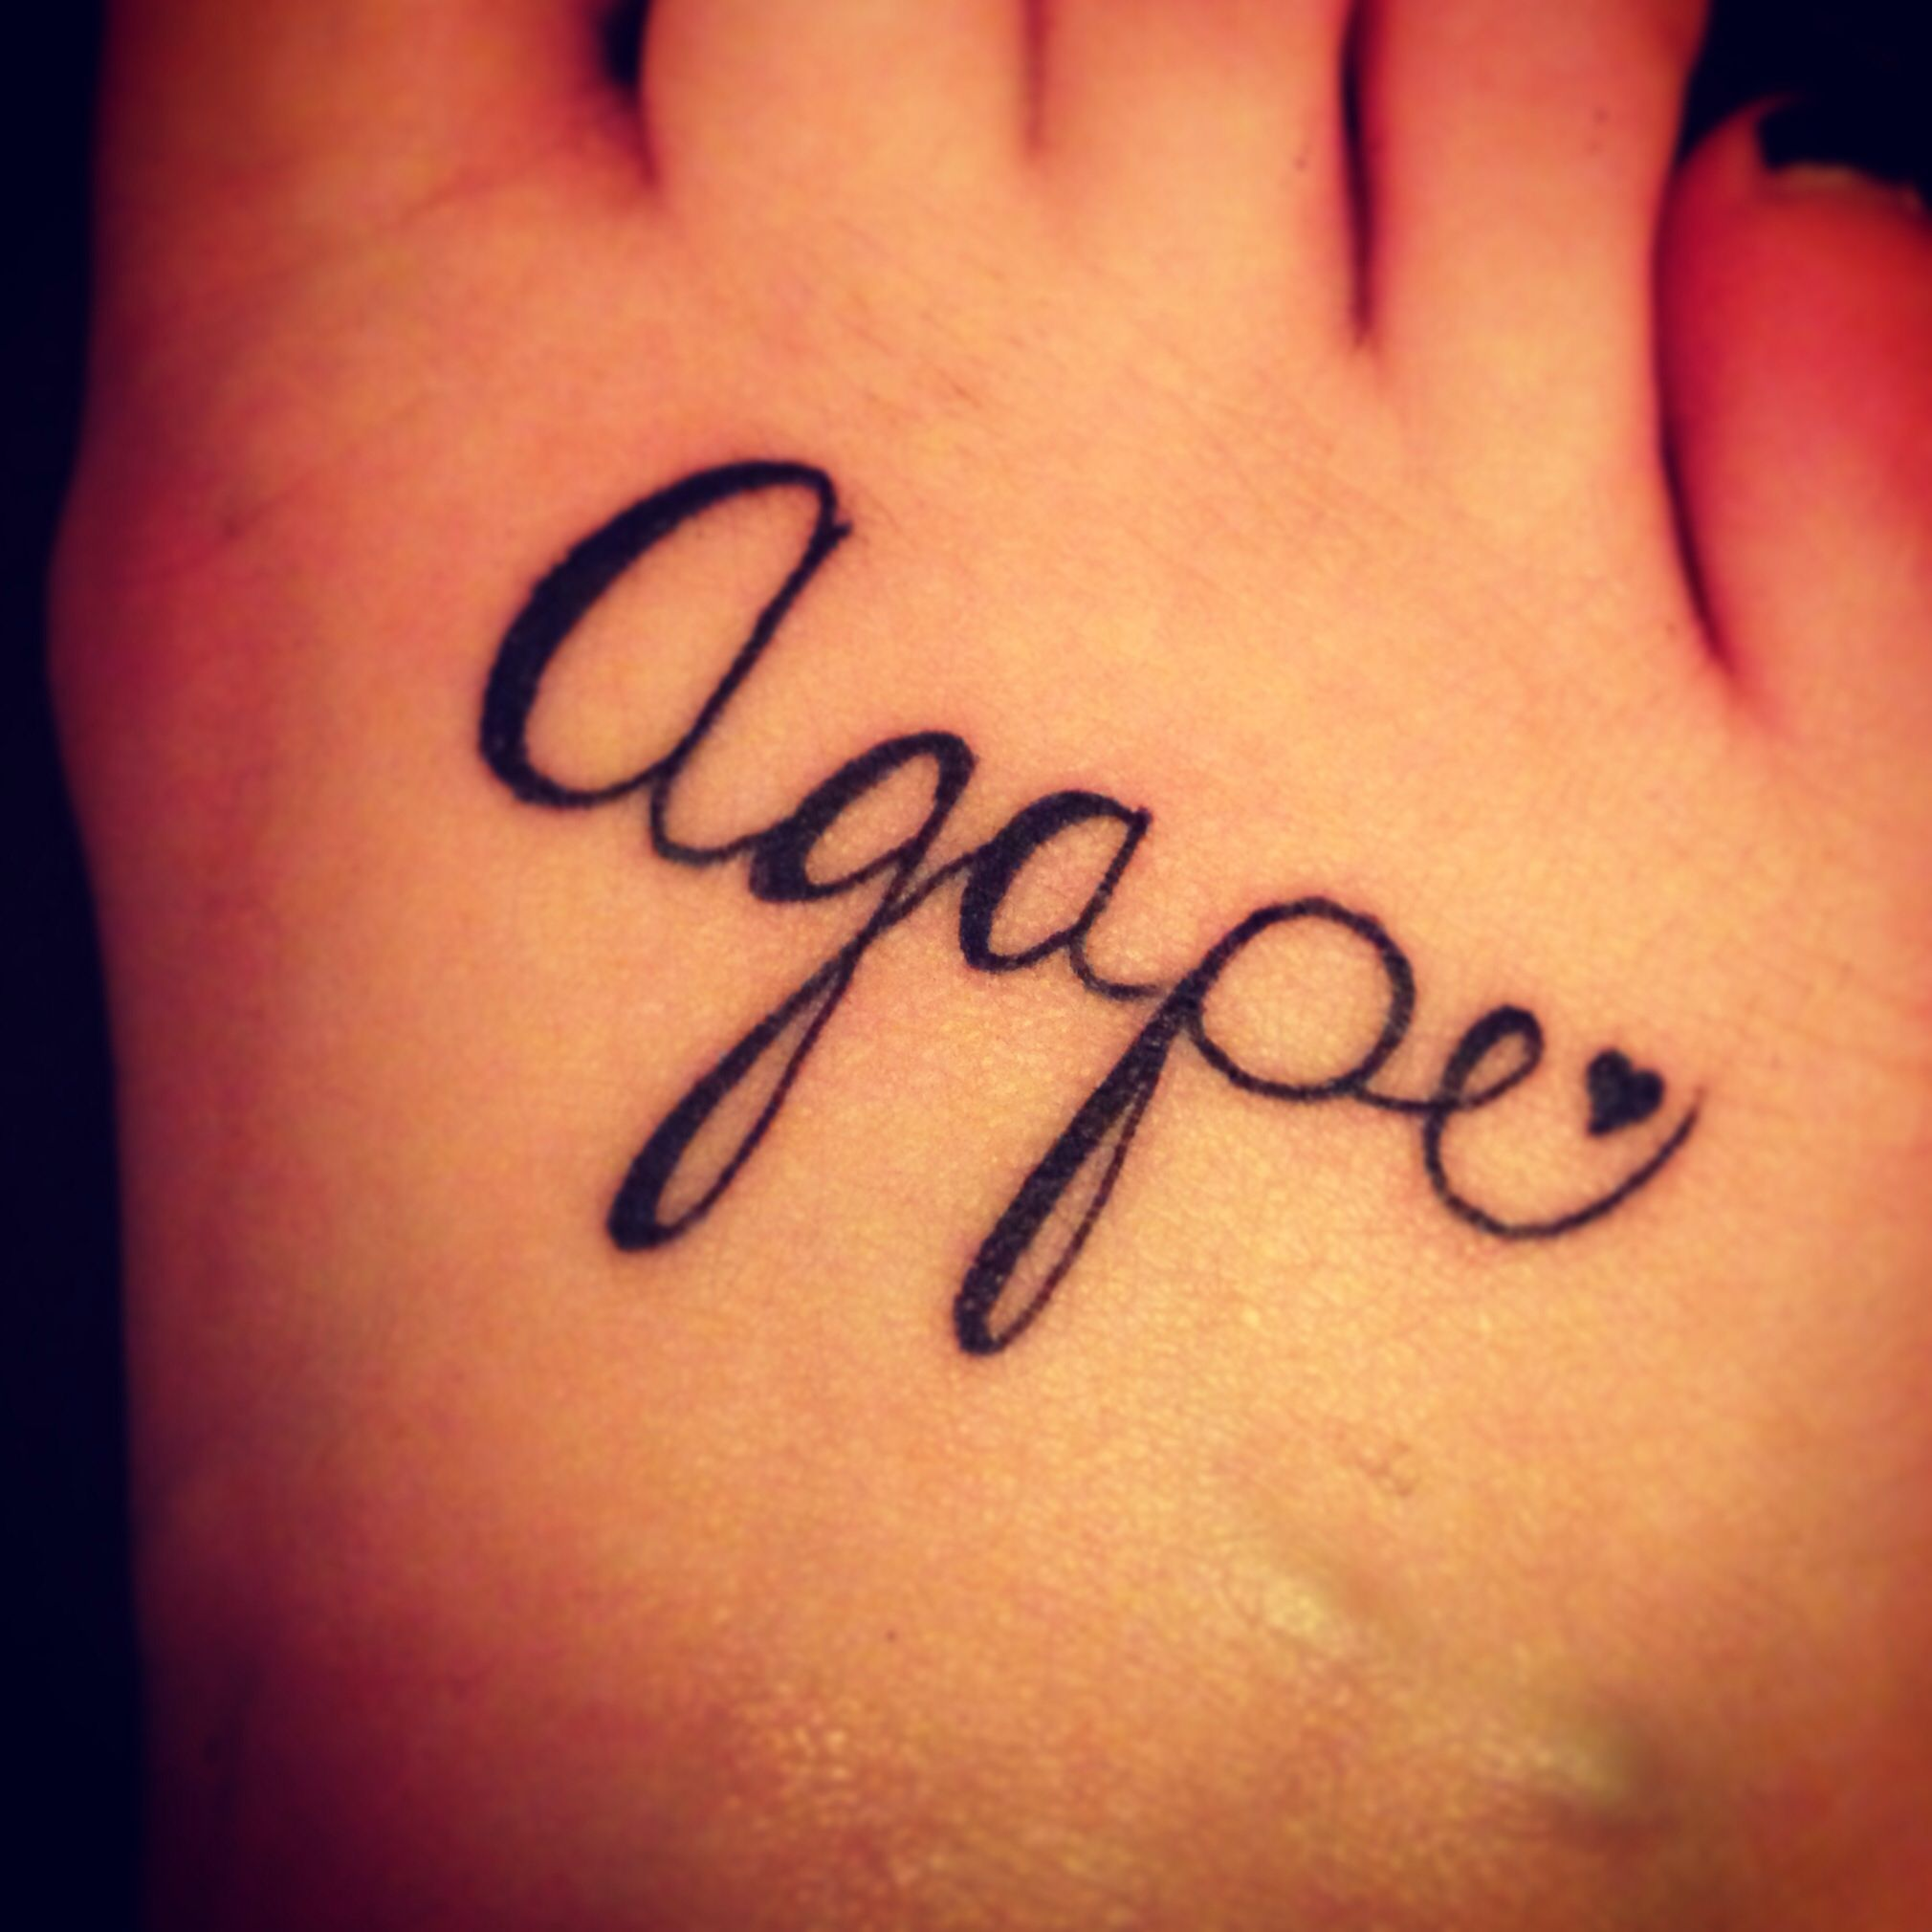 Agape Greek For Unconditional Love 3 3 3 Unconditional Love